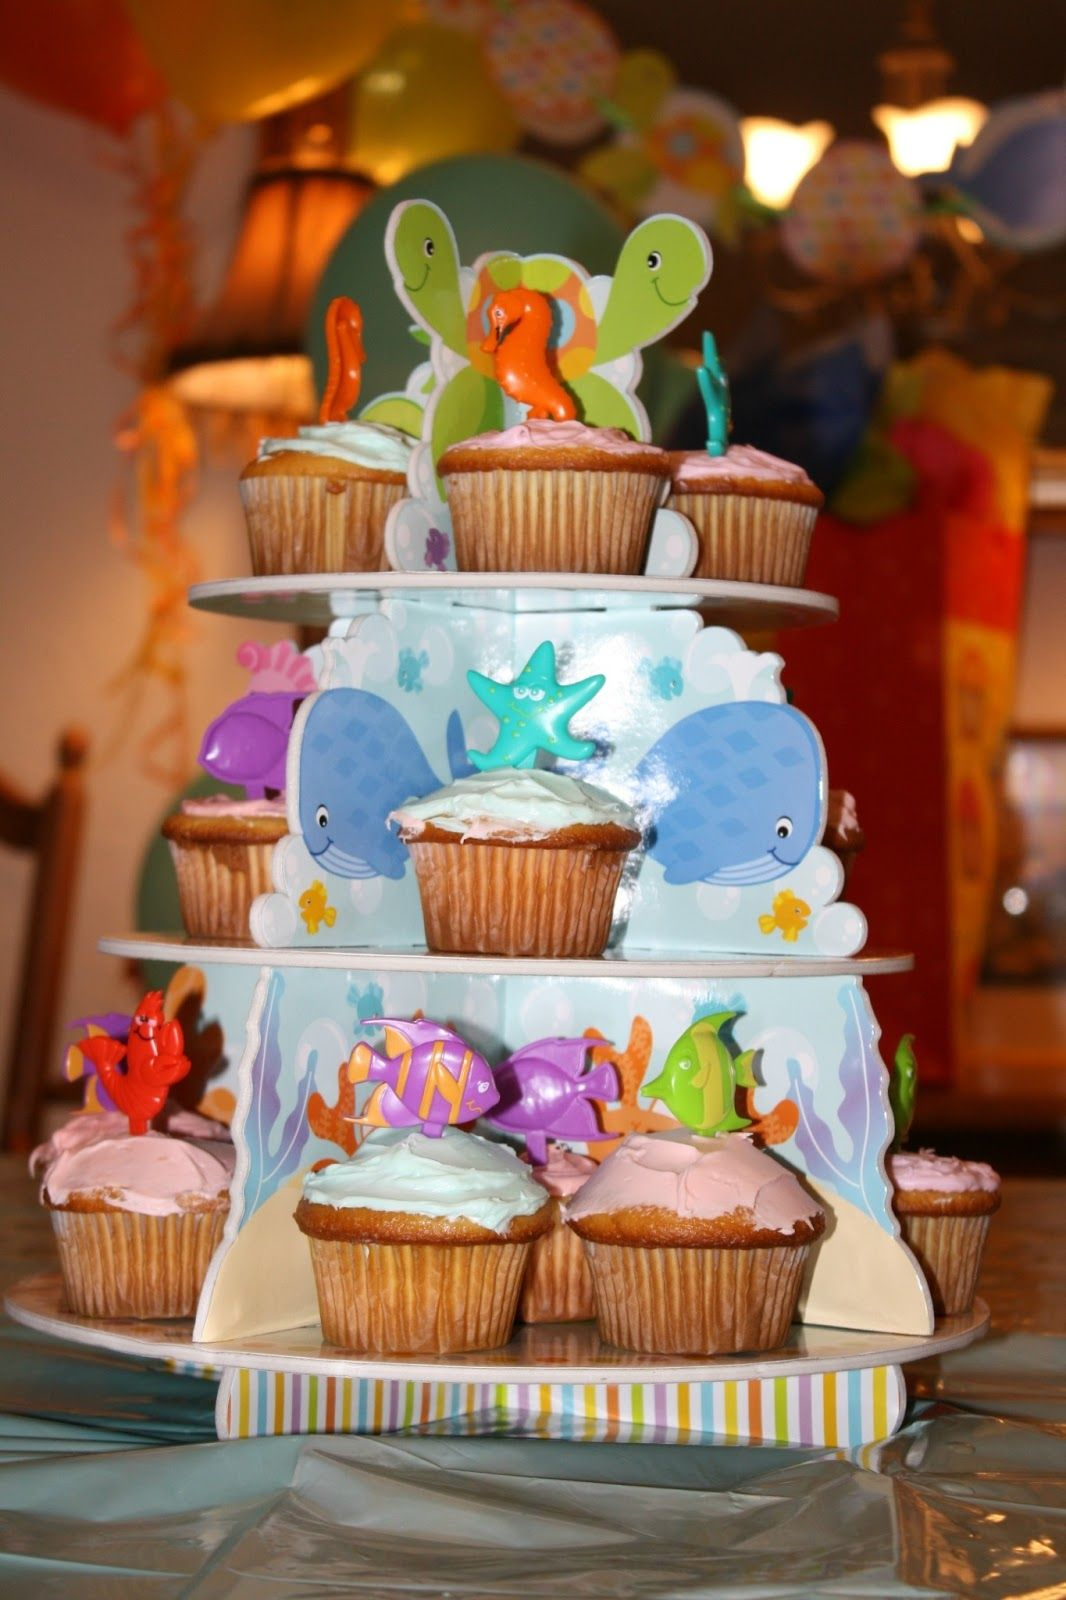 Sippy Cup Chronicles: Under The Sea Birthday Party